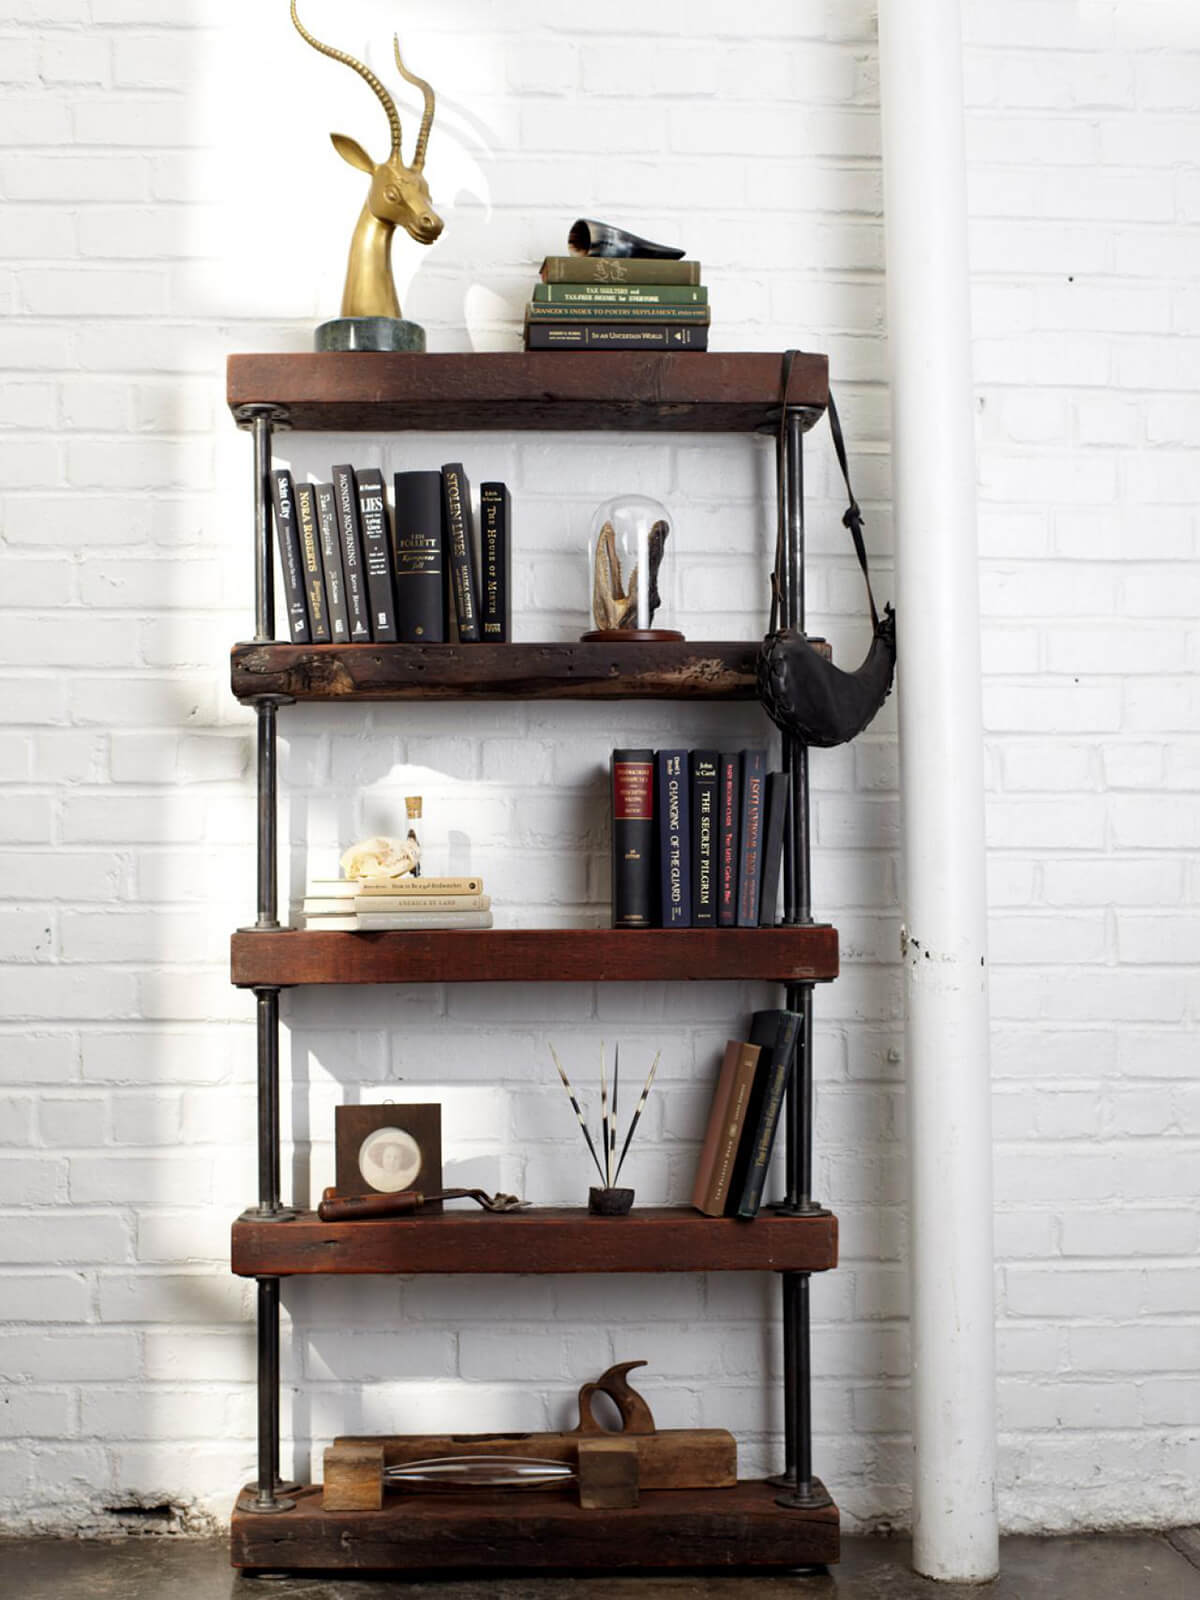 White Brick with Pipe and Wooden Shelf